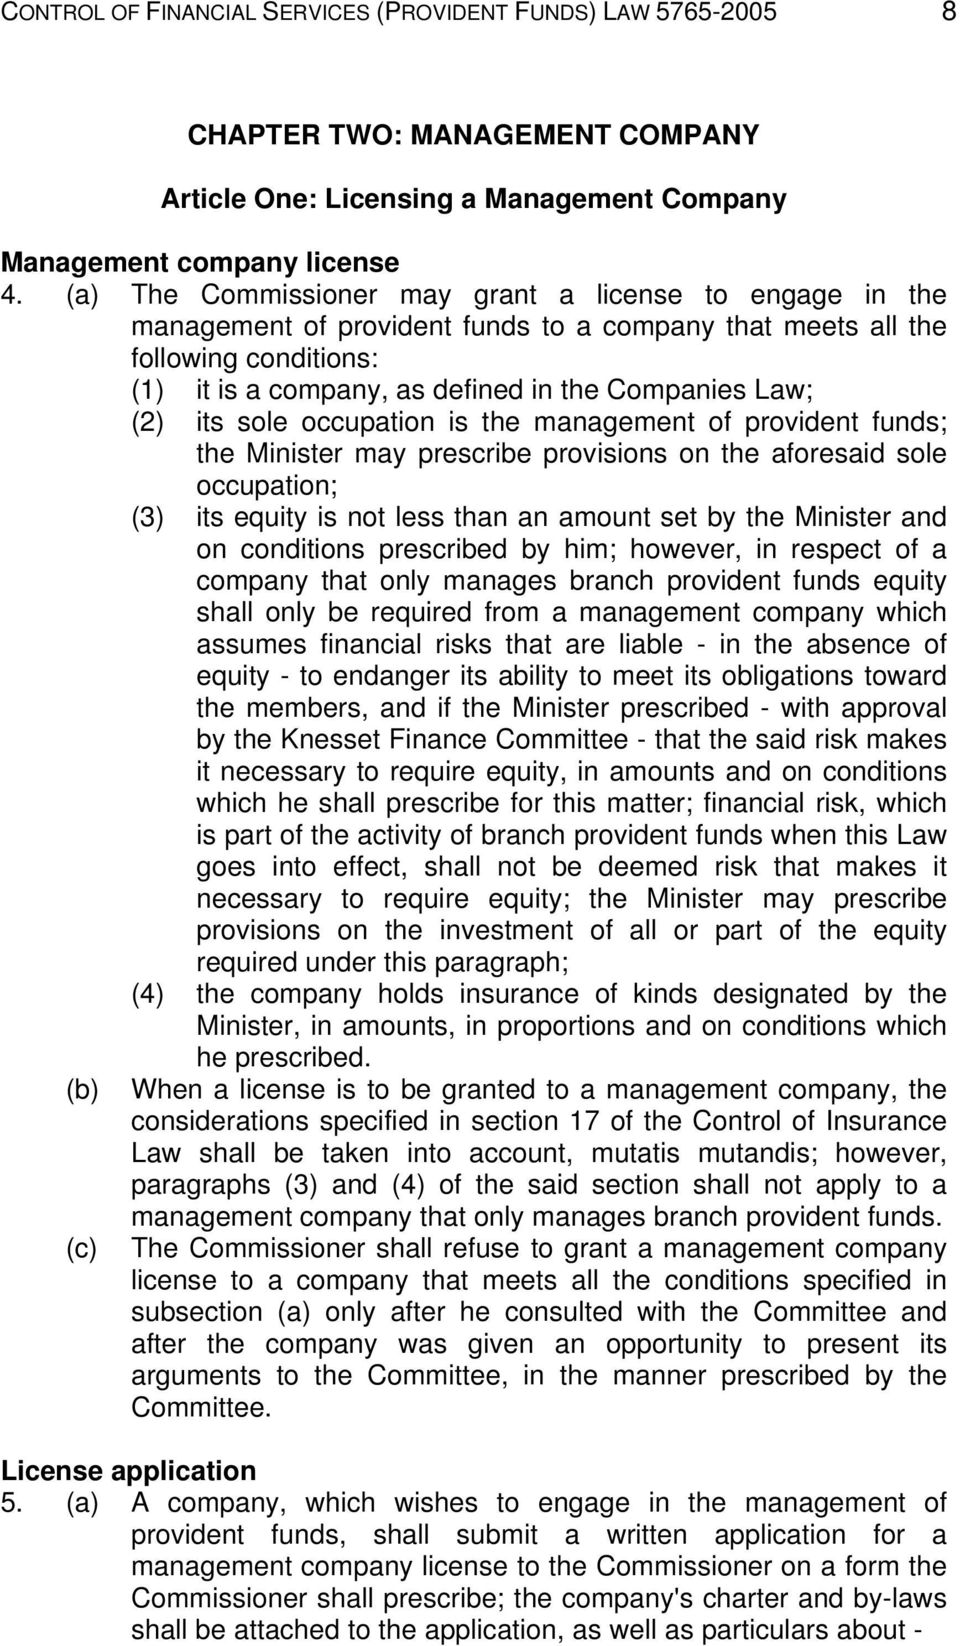 its sole occupation is the management of provident funds; the Minister may prescribe provisions on the aforesaid sole occupation; (3) its equity is not less than an amount set by the Minister and on